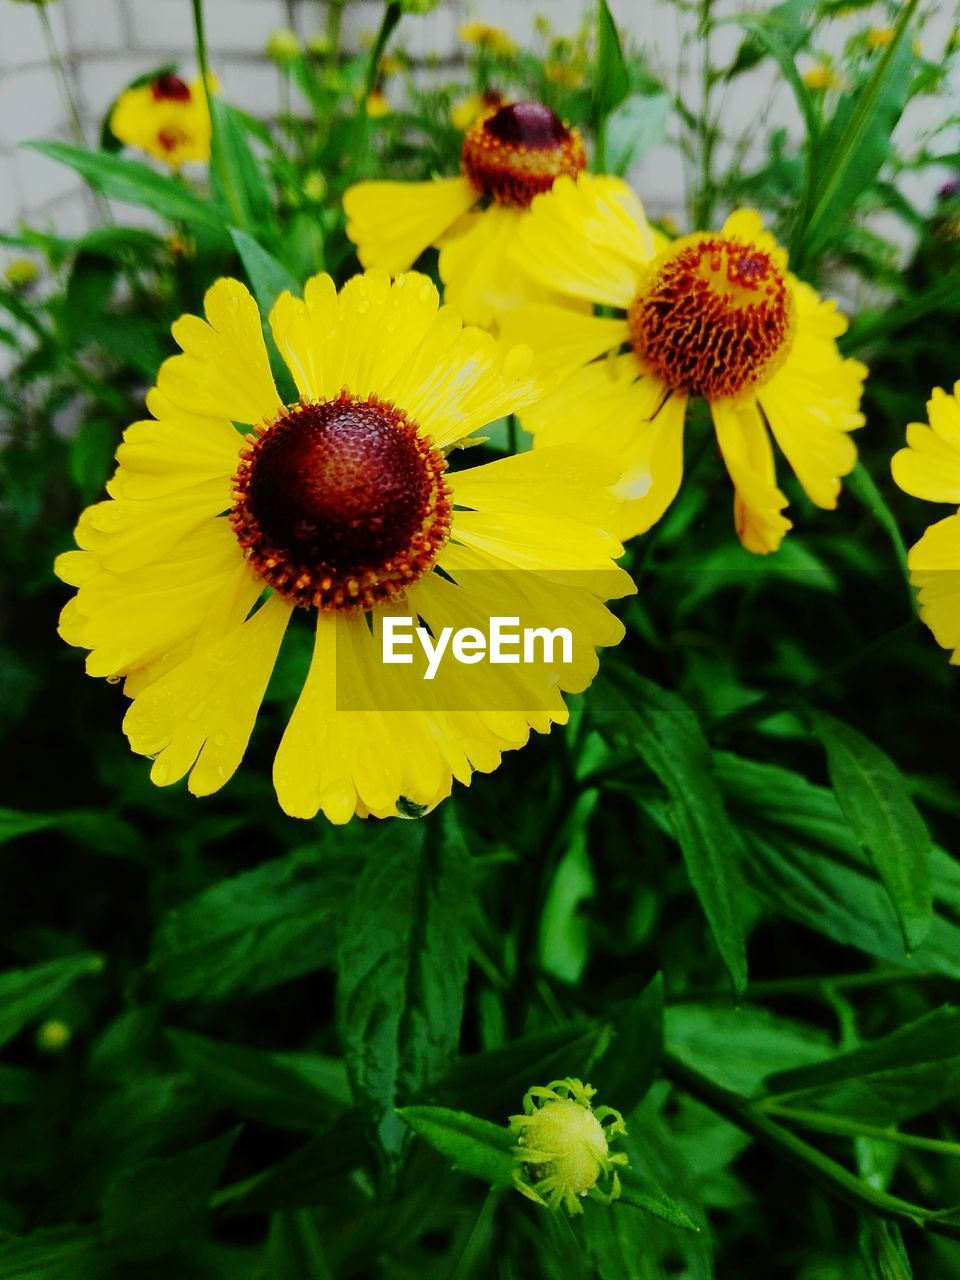 flower, yellow, petal, fragility, freshness, beauty in nature, nature, flower head, growth, plant, no people, outdoors, day, pollen, close-up, focus on foreground, green color, blooming, sunflower, leaf